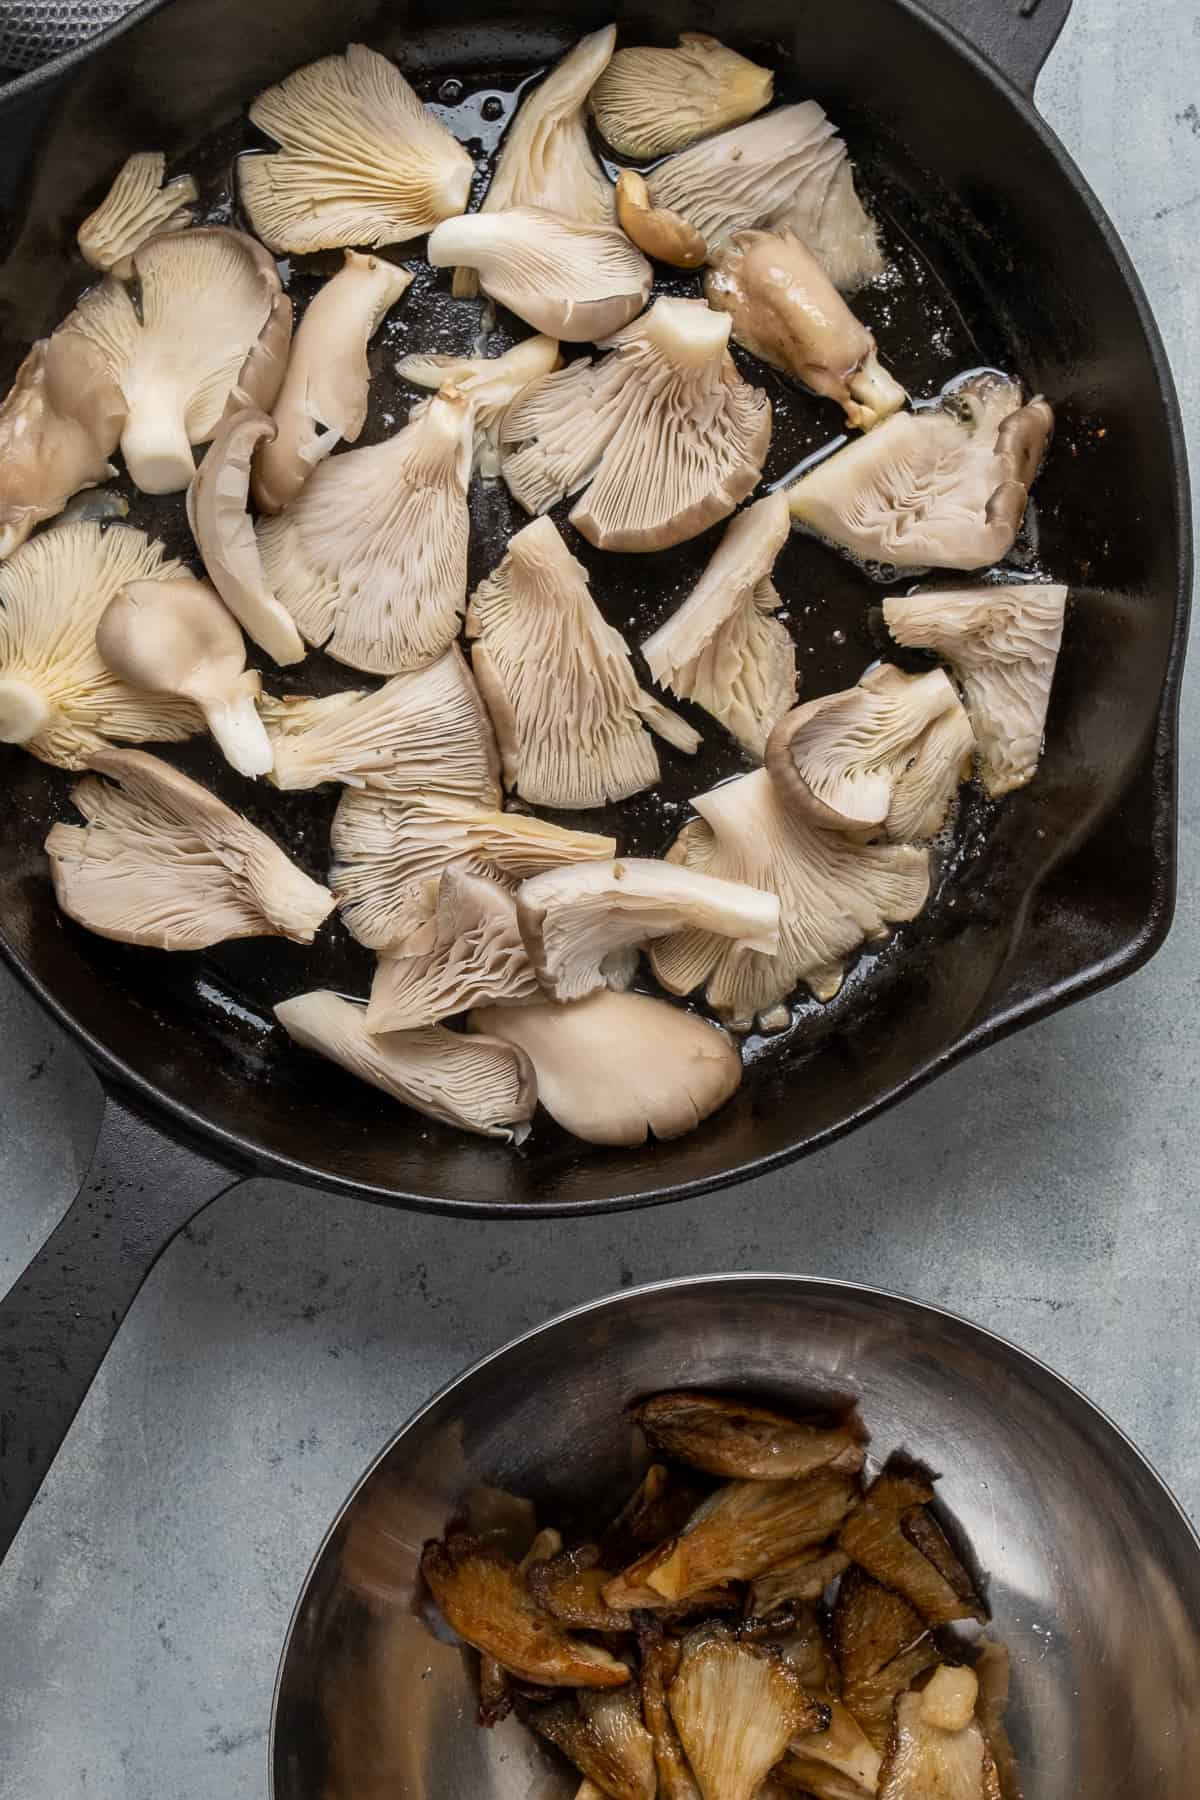 Oyster mushrooms cooking in a cast iron skillet and some fried ones are in a bowl on the side.